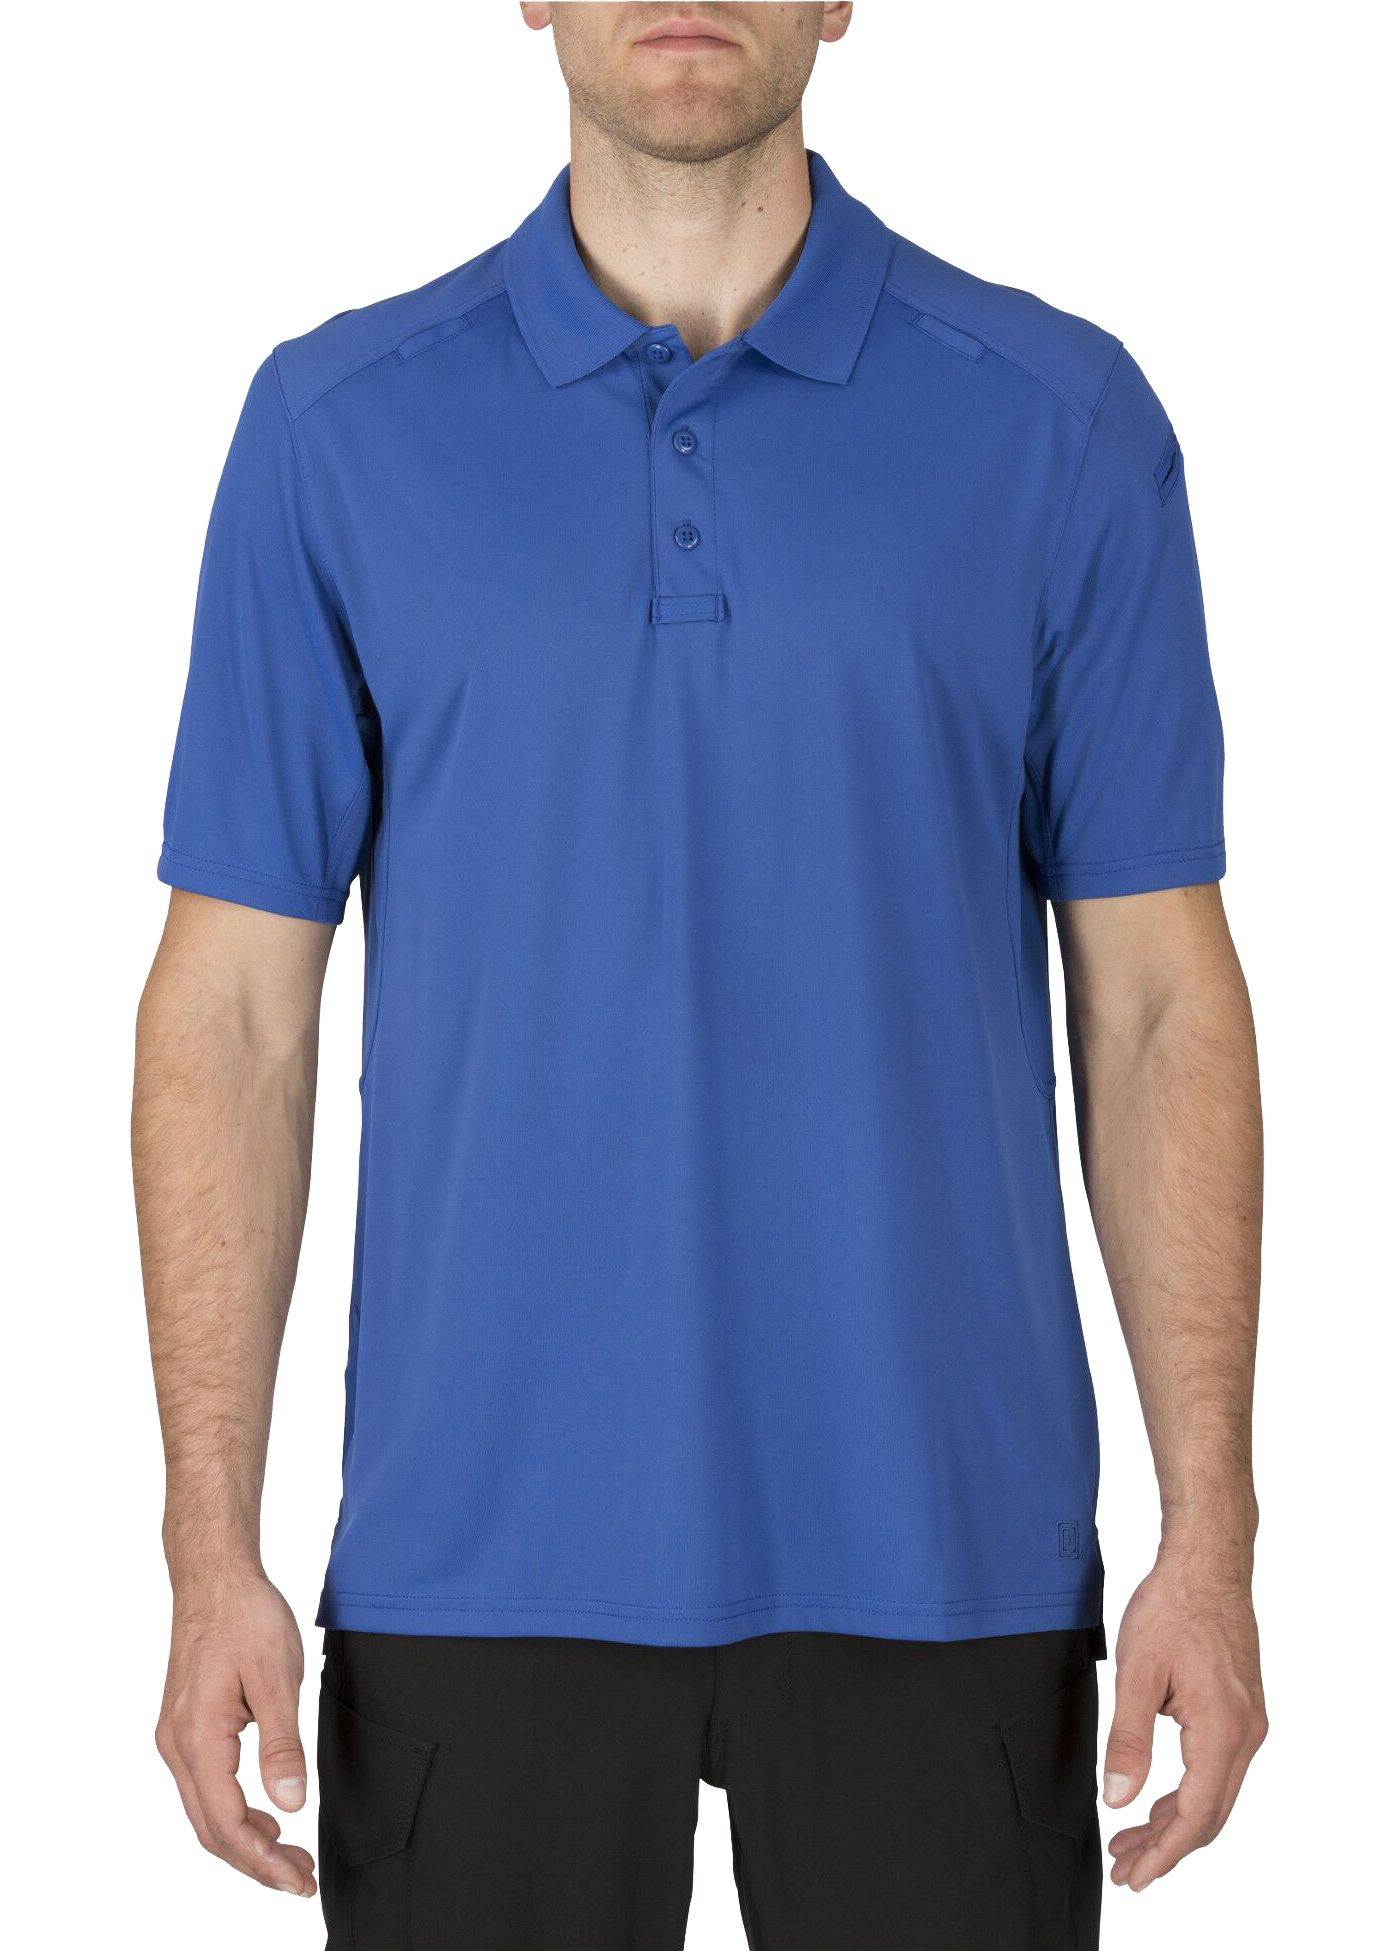 5.11 Tactical Men's Helios Short Sleeve Polo